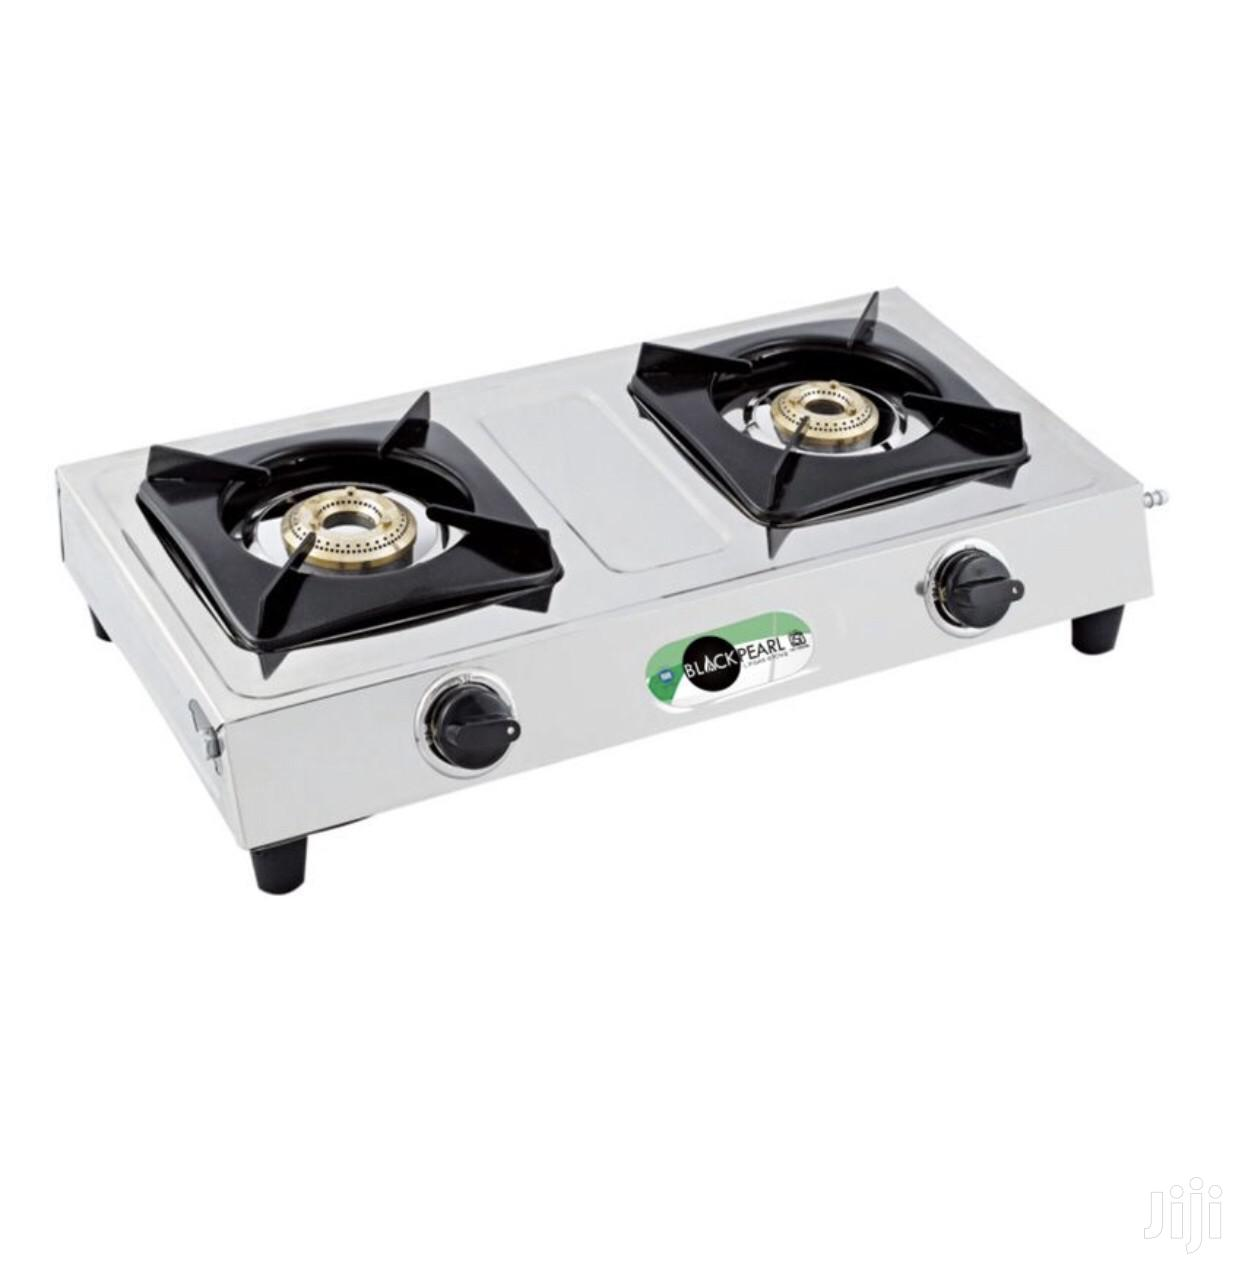 Stainless Steel- Innova 2 Burner Gas Stove New